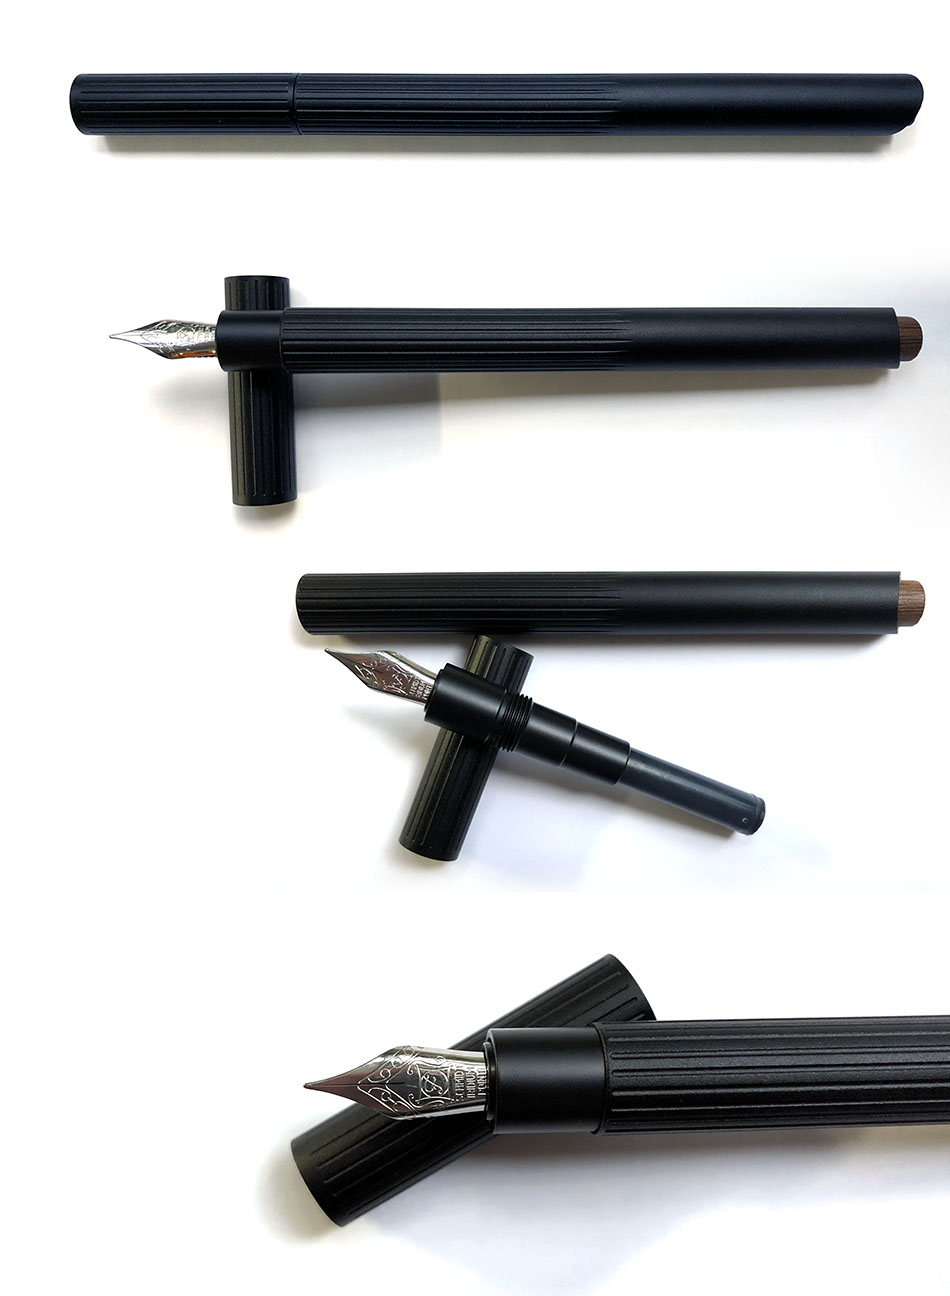 Photo collage of a fountain pen on a white background. The pen is matte black aluminum with a brown bamboo stub in the back